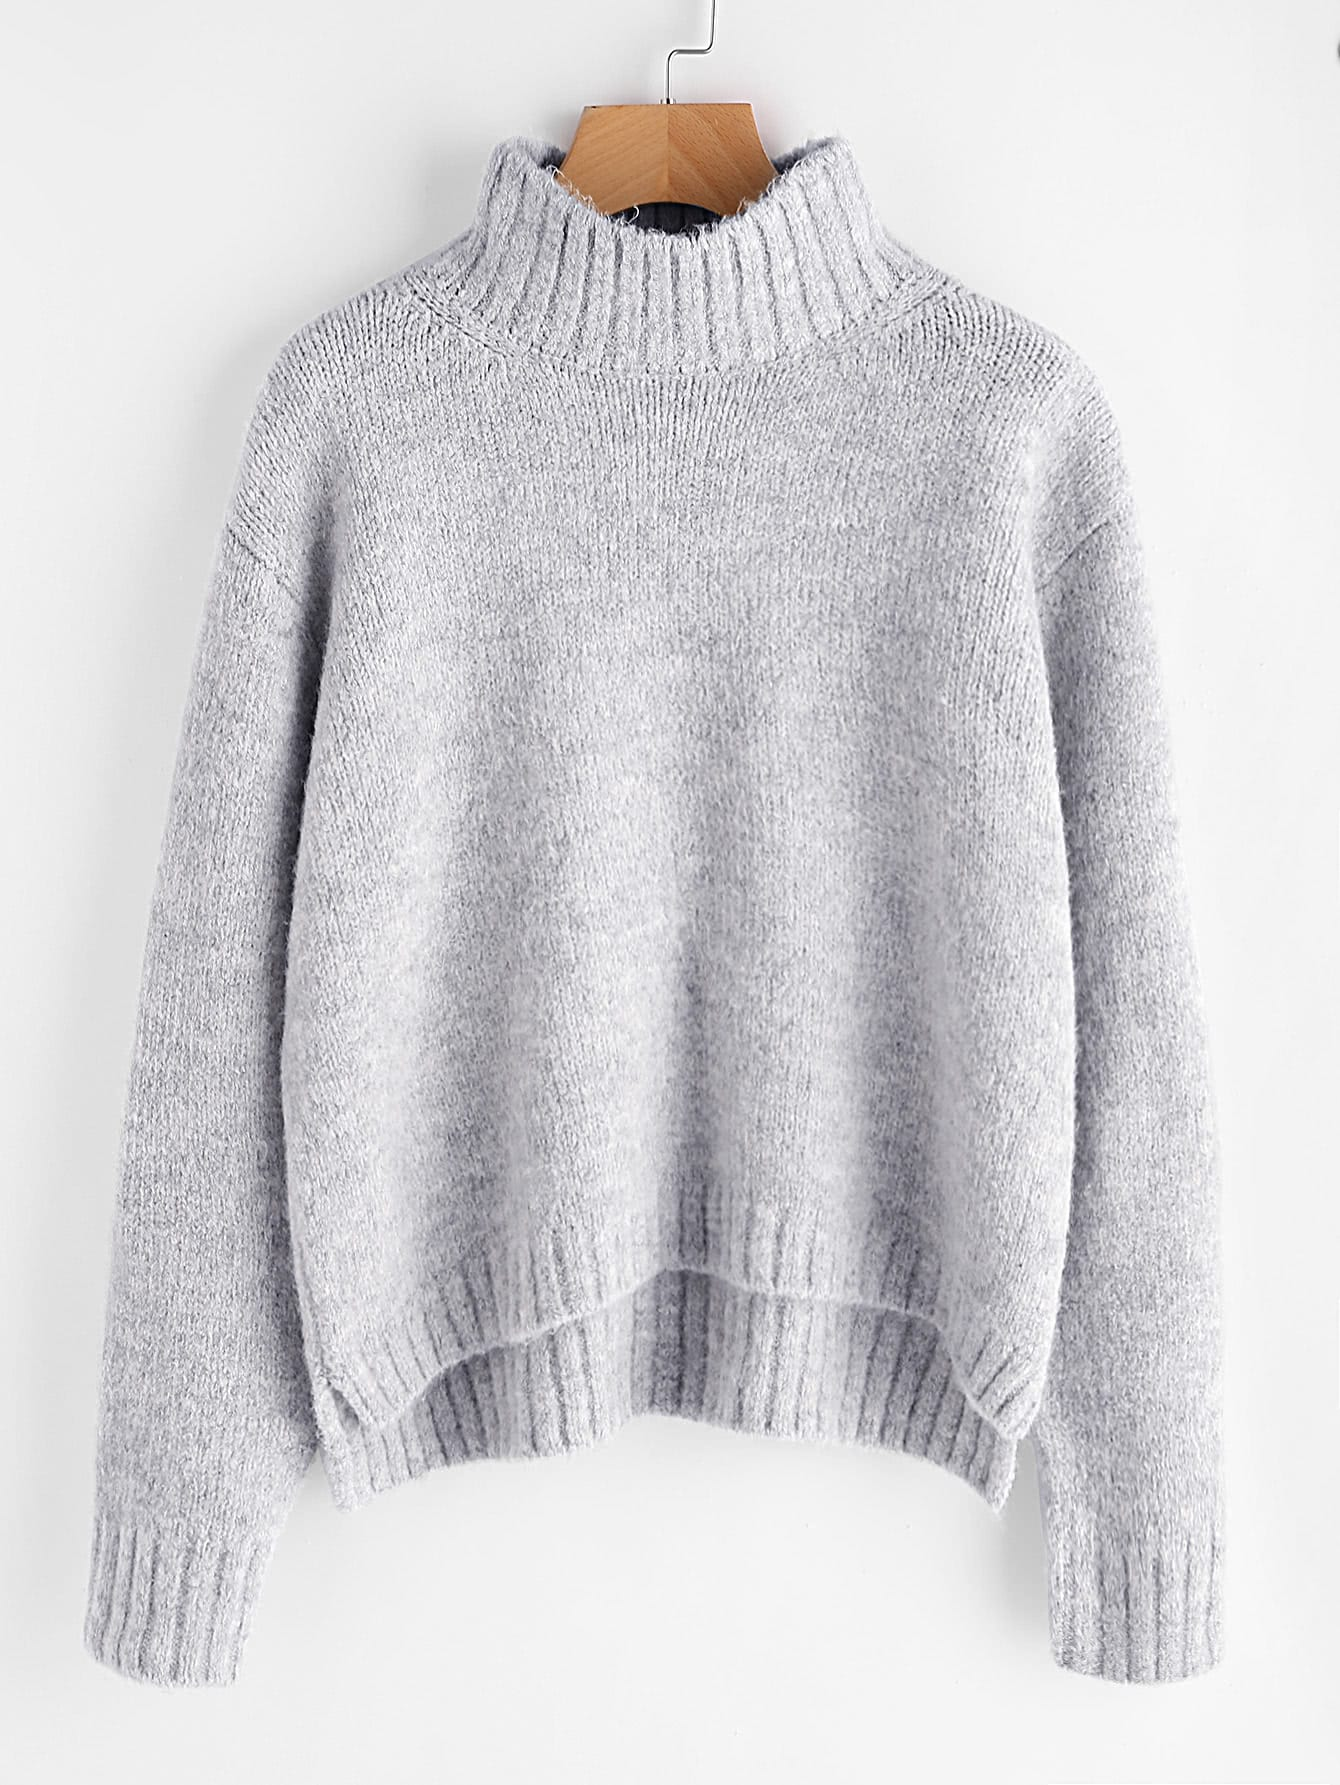 Marled Knit Stepped Hem Jumper iridescent sequin ripped marled knit jumper